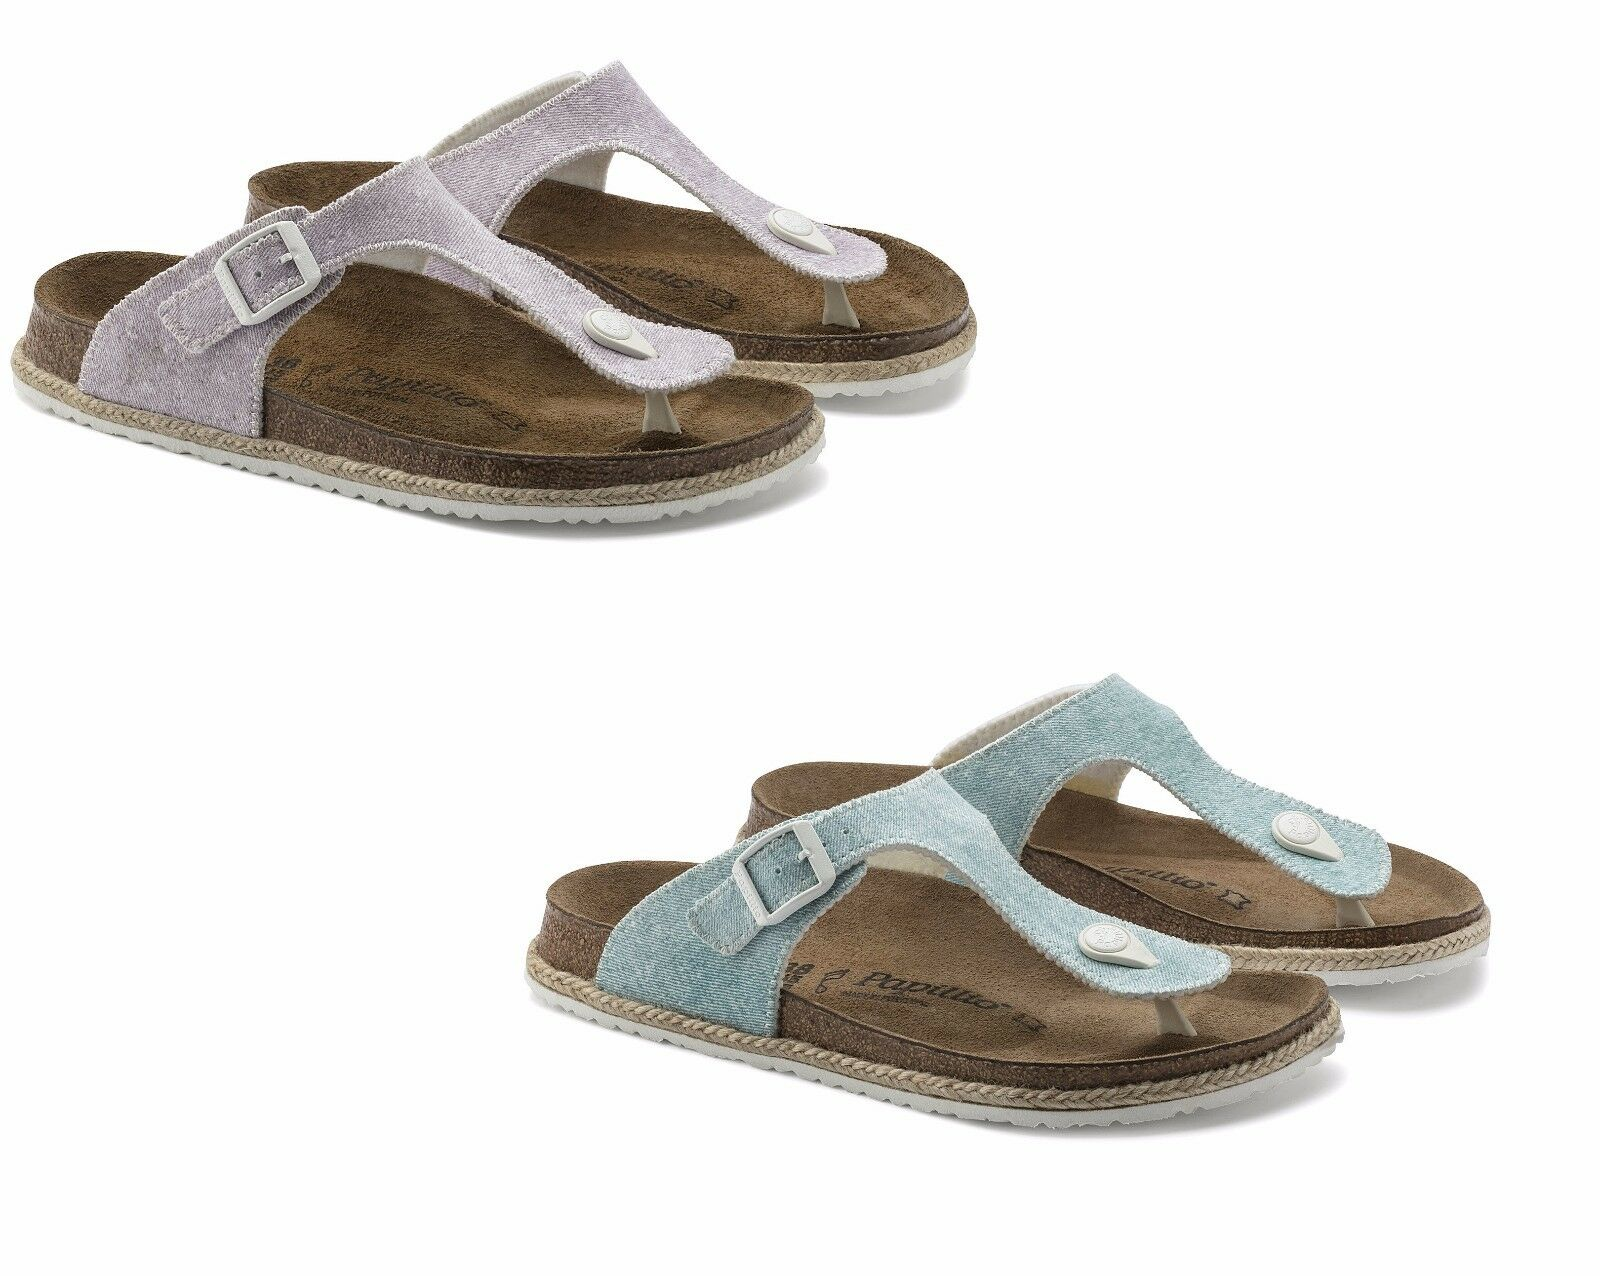 BIRKENSTOCK PAPILLIO GIZEH BEACH Damens'S LIGHT GREY PURPLE Blau Damens'S BEACH THONGS SANDALS 697bdc